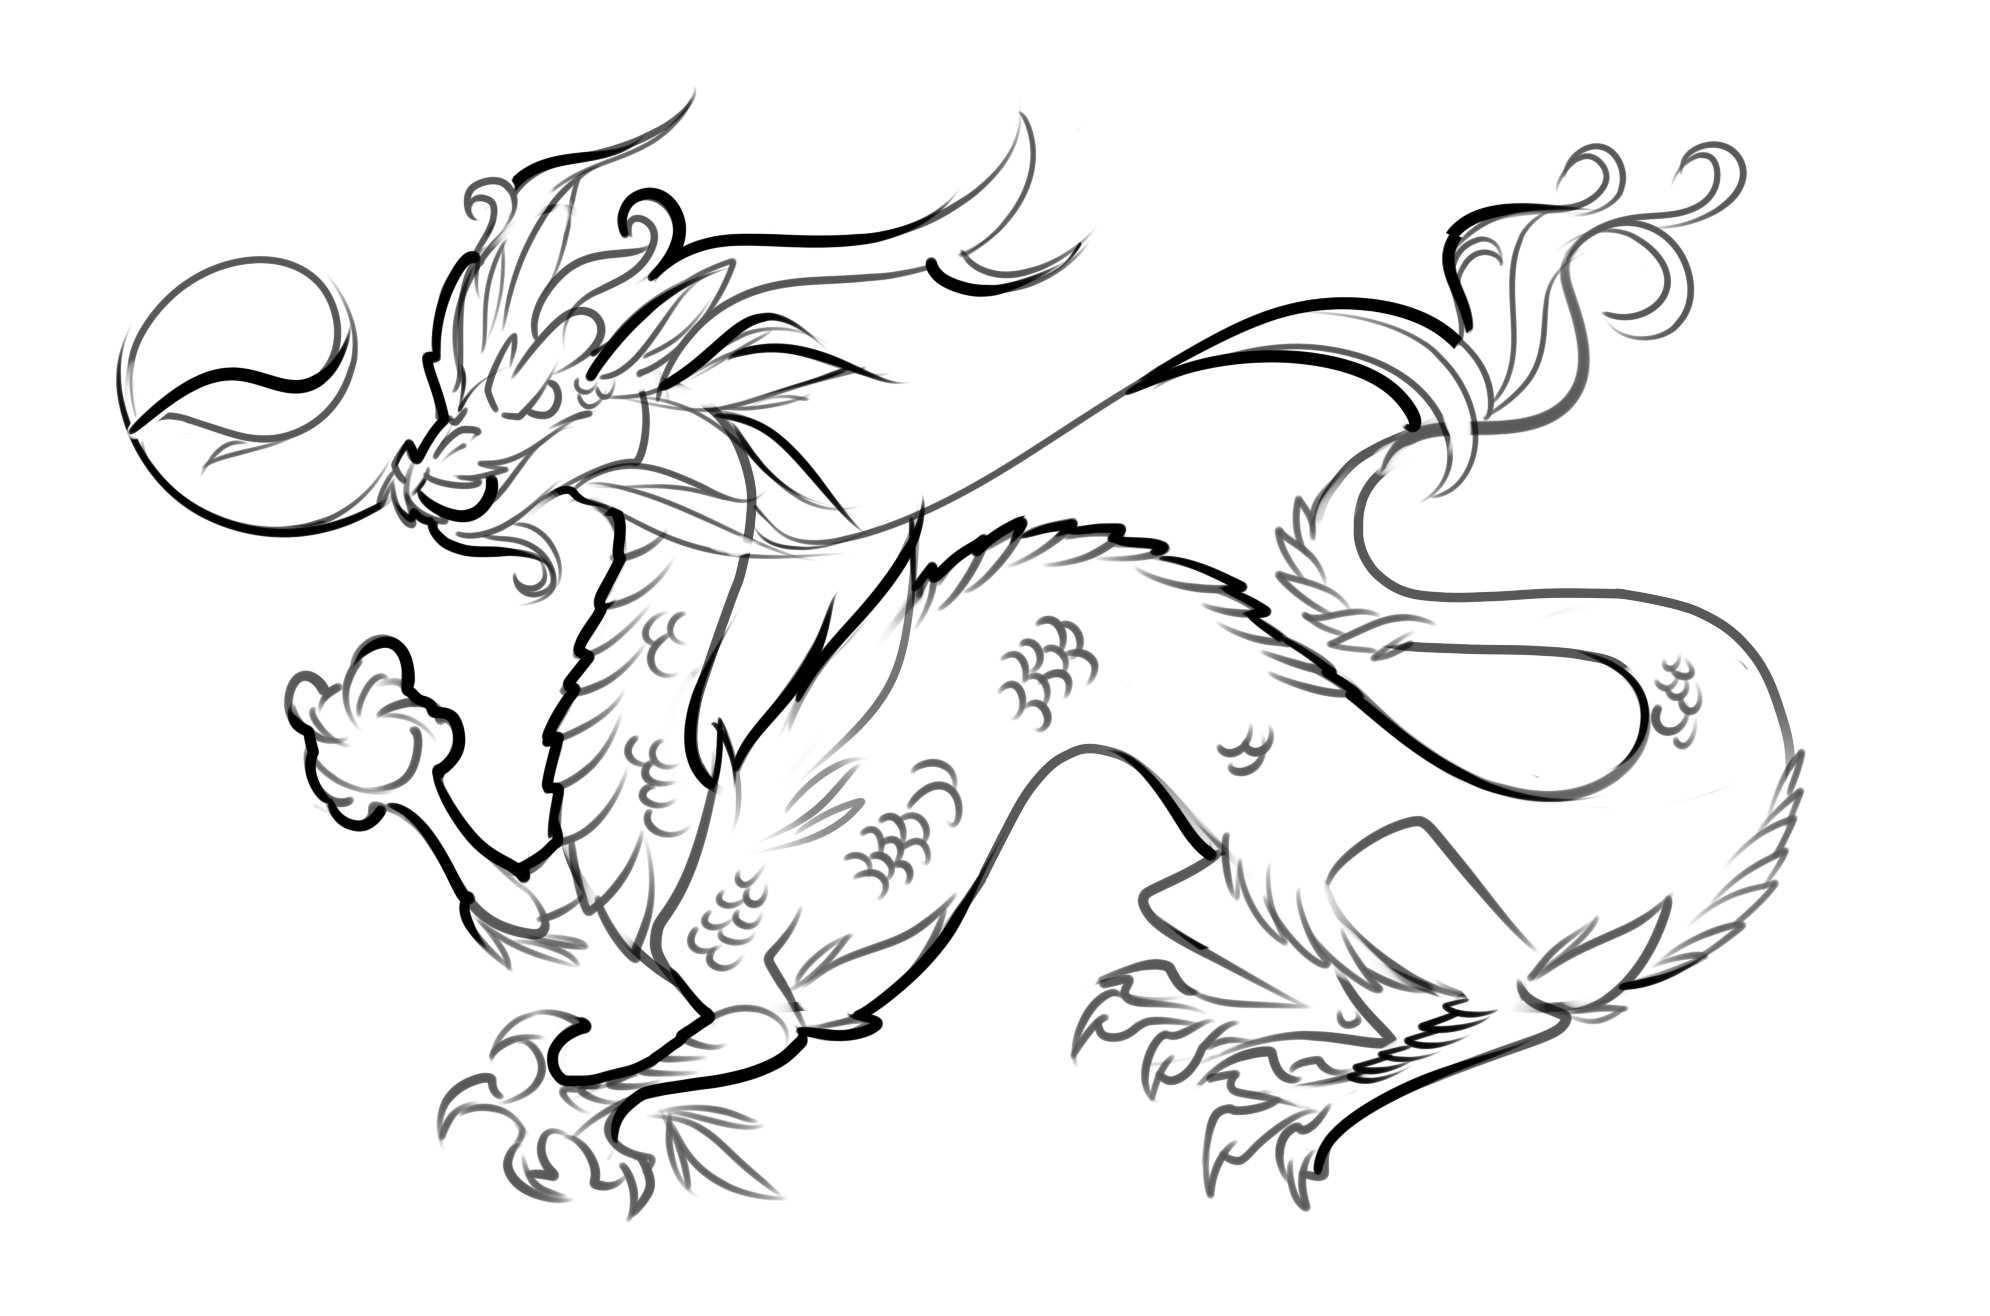 dragon coloring pages free - photo#10